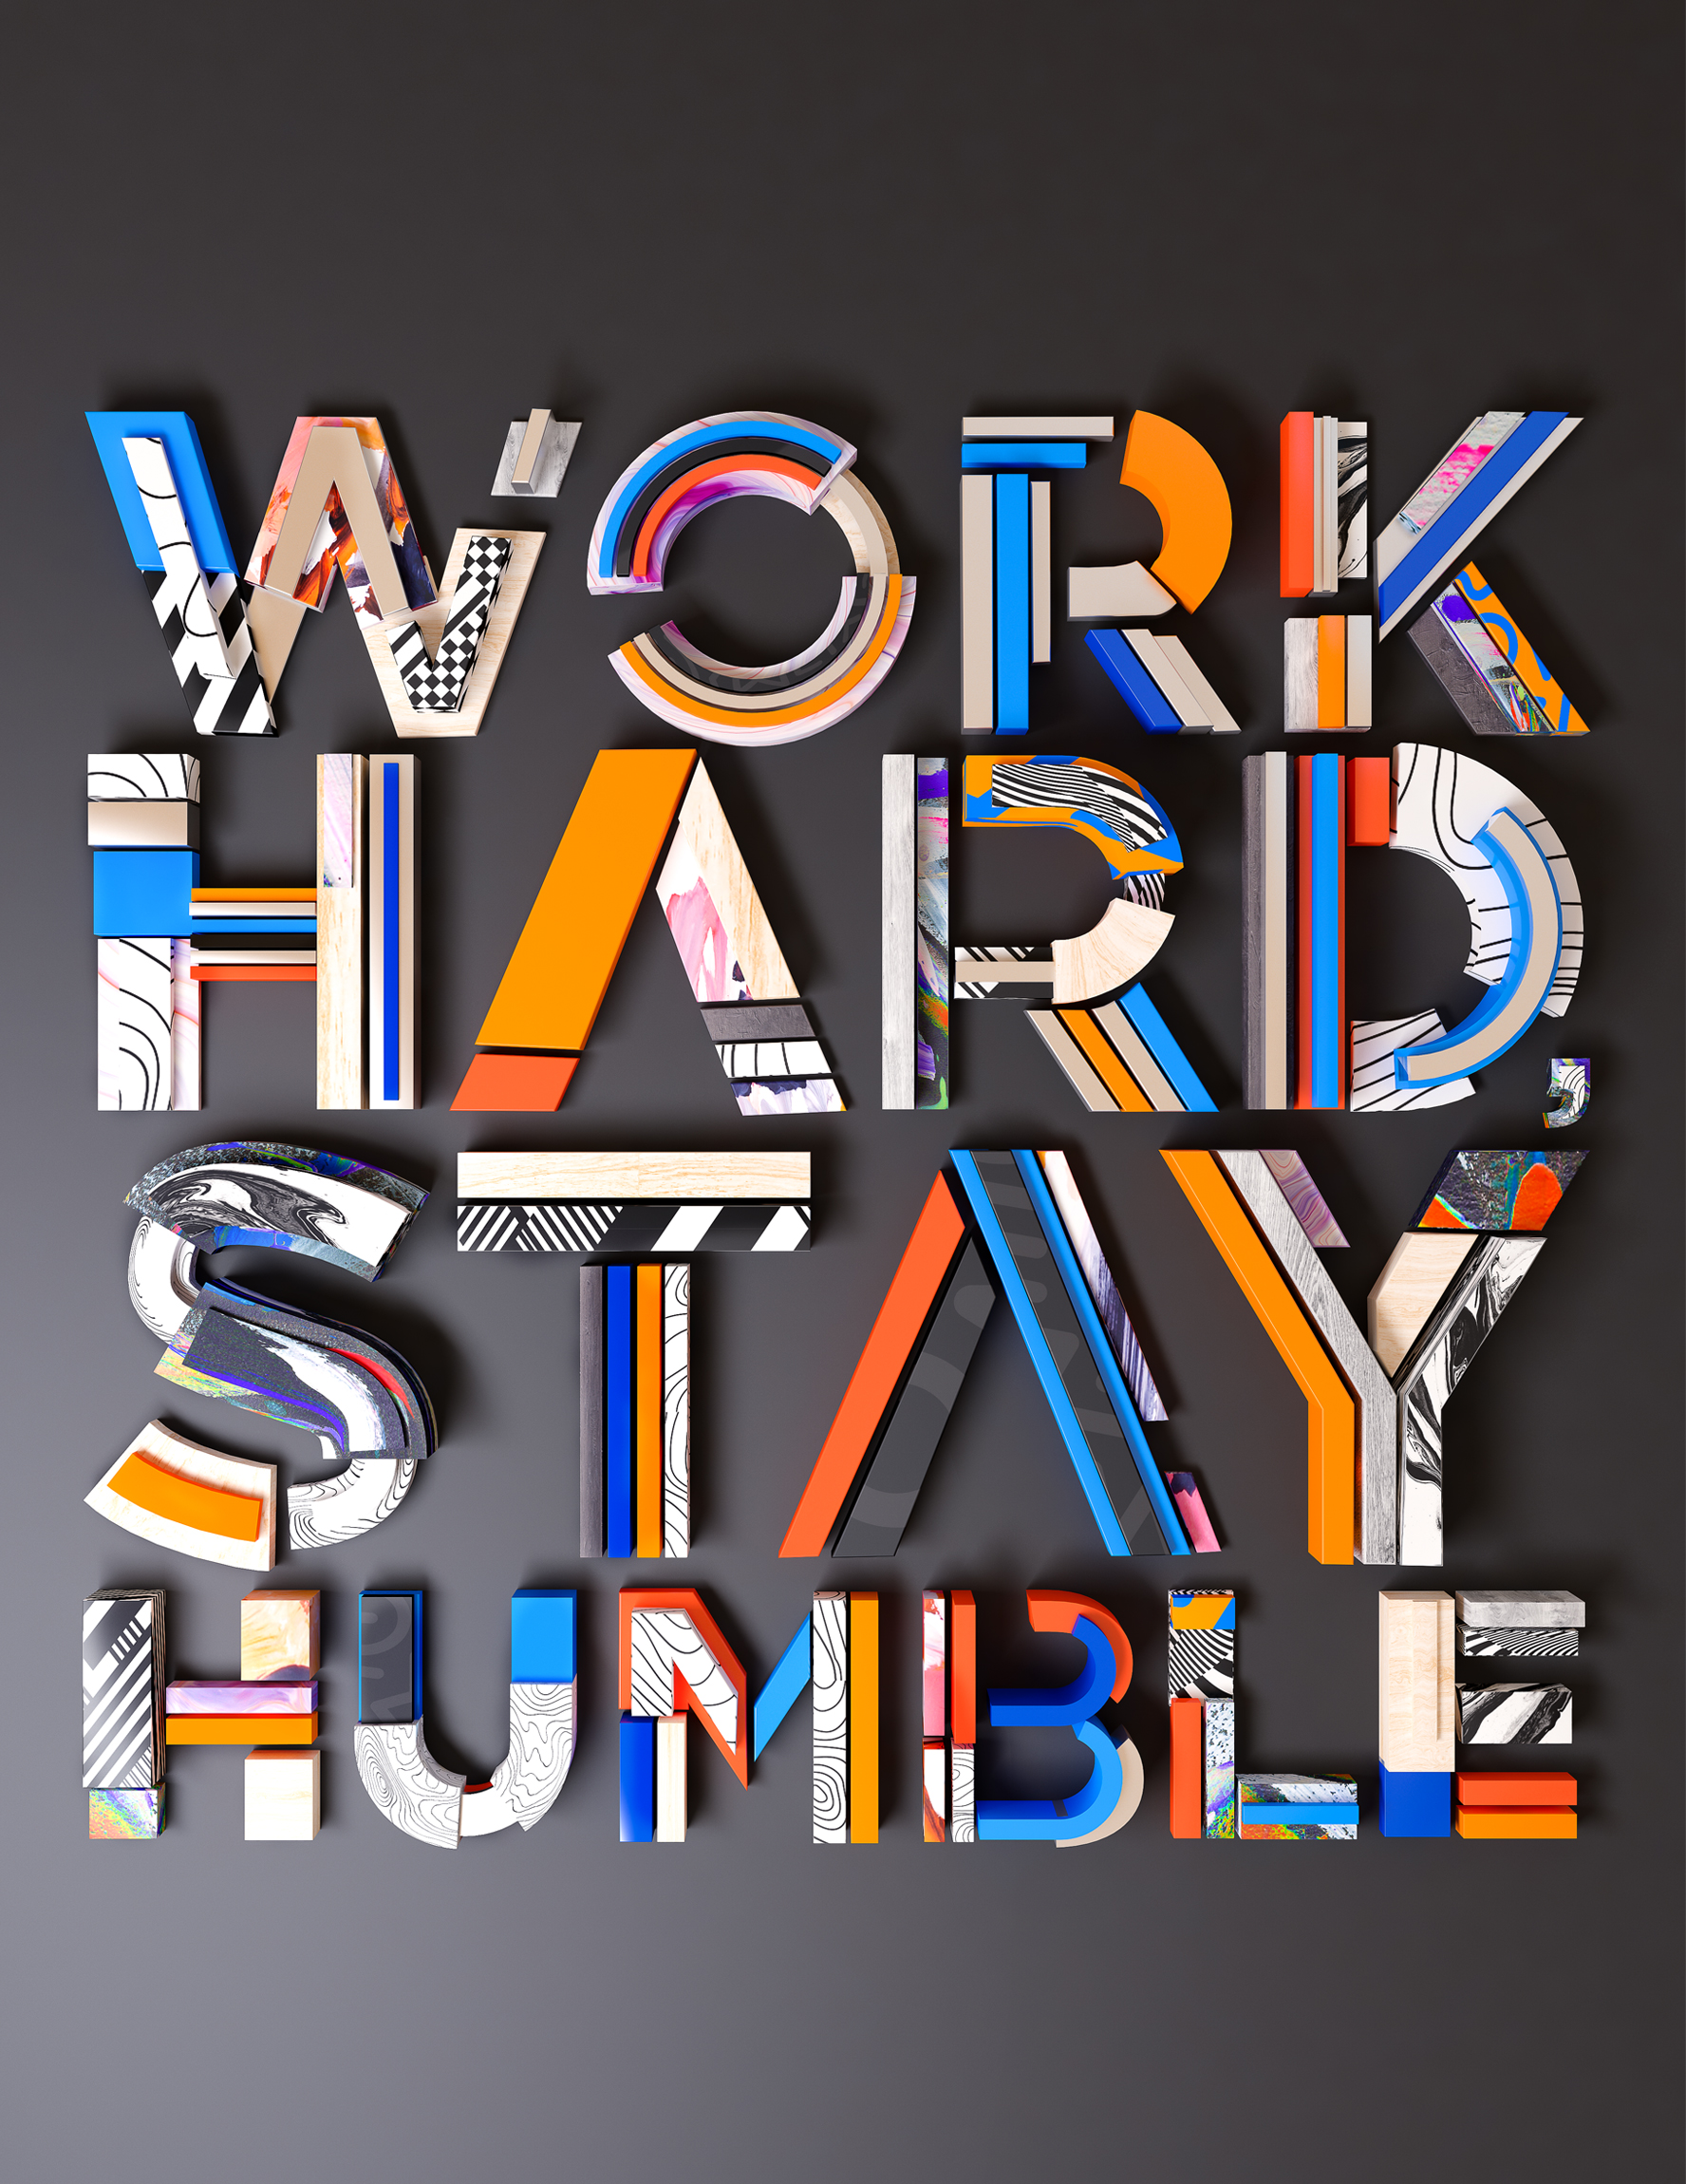 Ben_Fearnley_TDA_WorkHardStayHumble_Typography.jpg